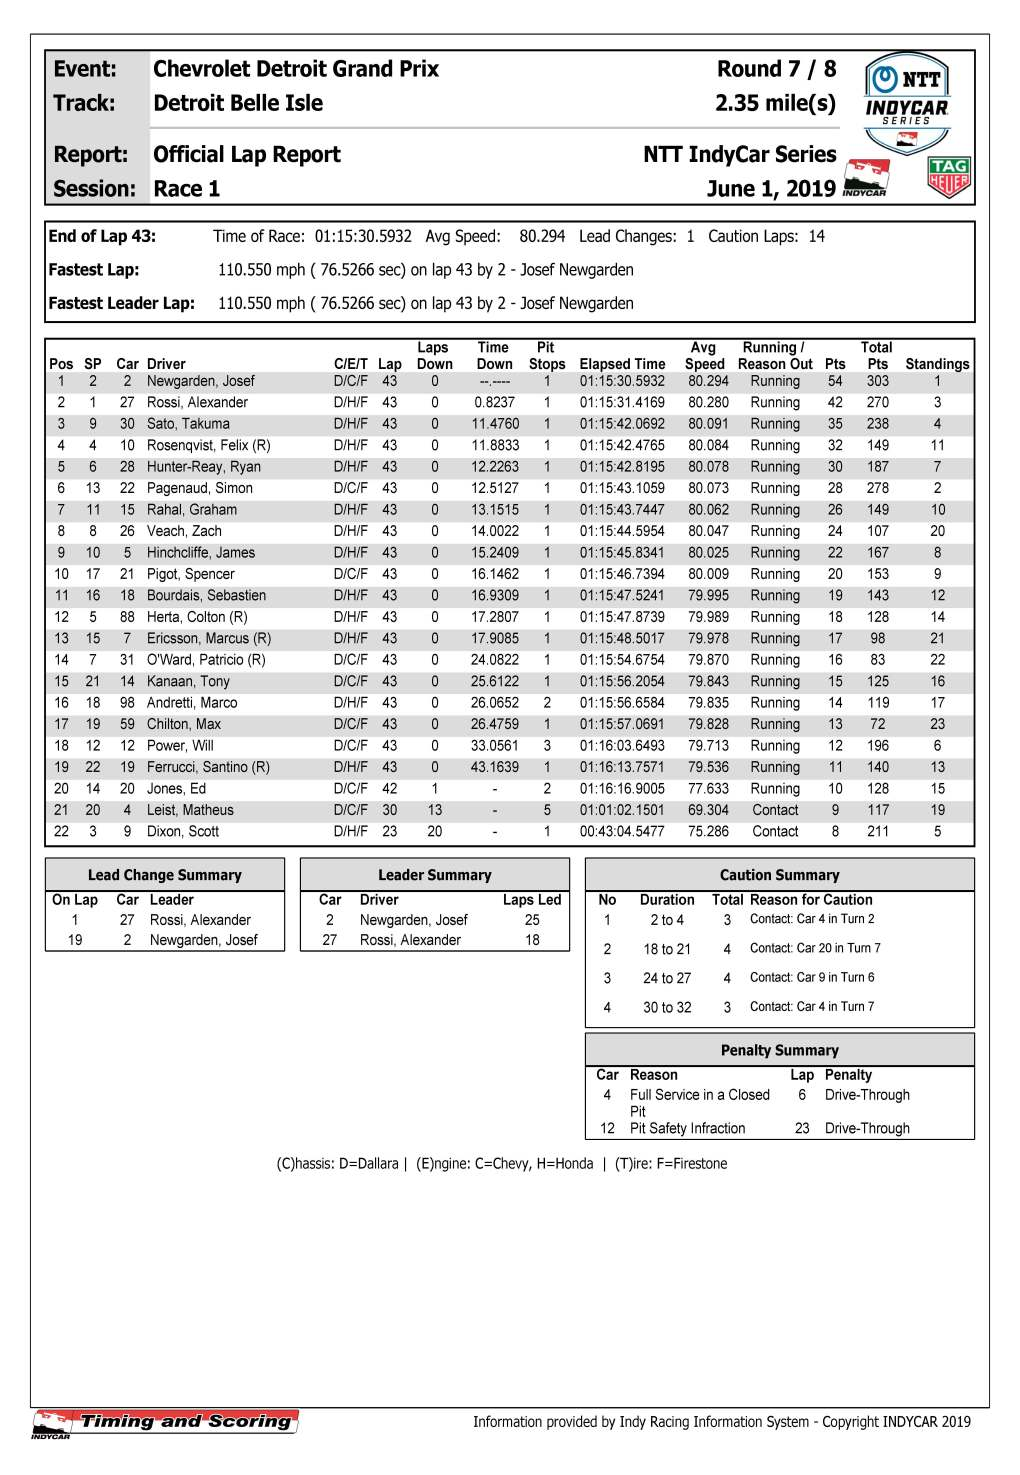 indycar-race-results official